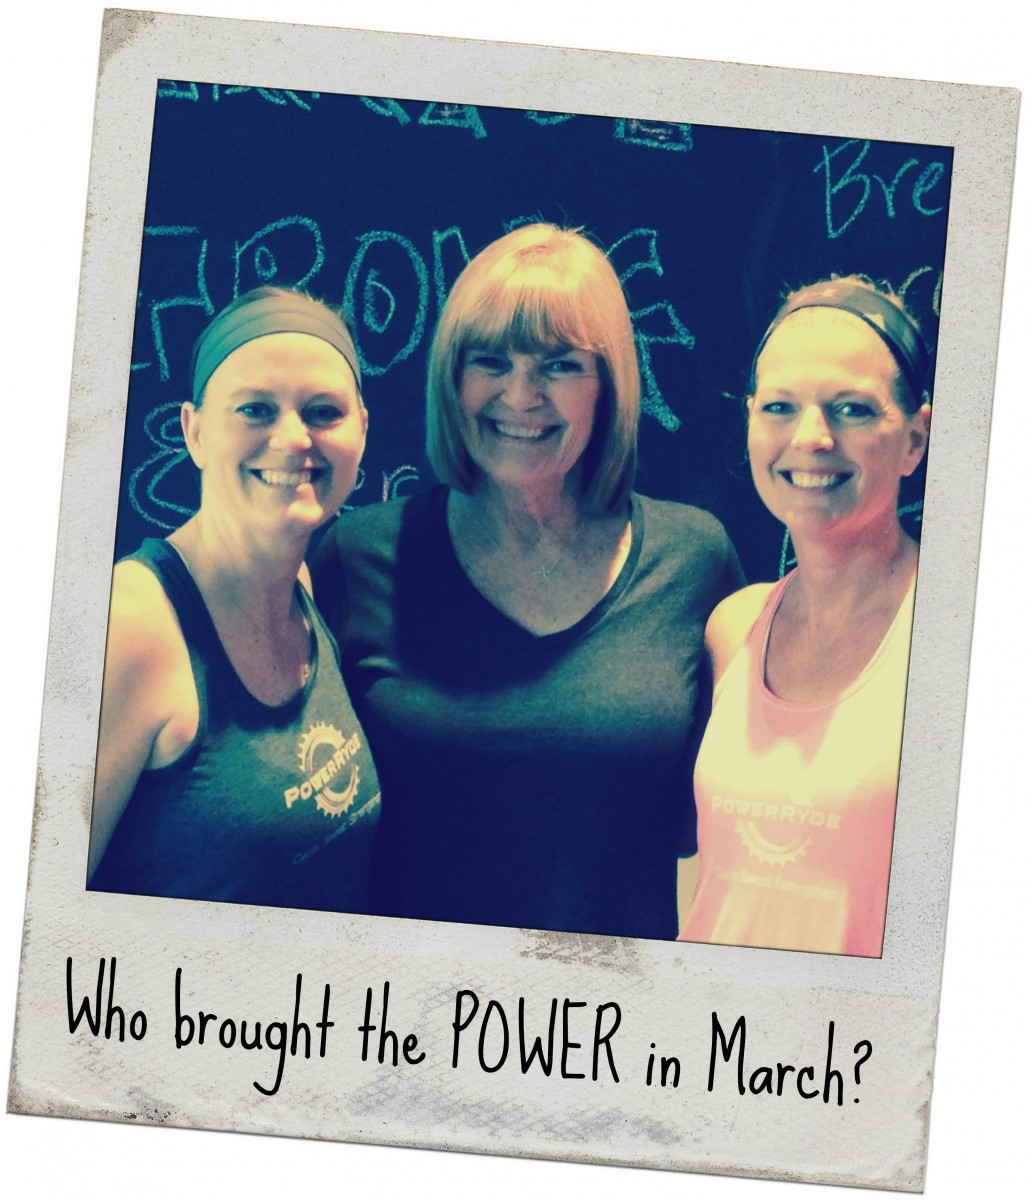 Who Brought the POWER in March?